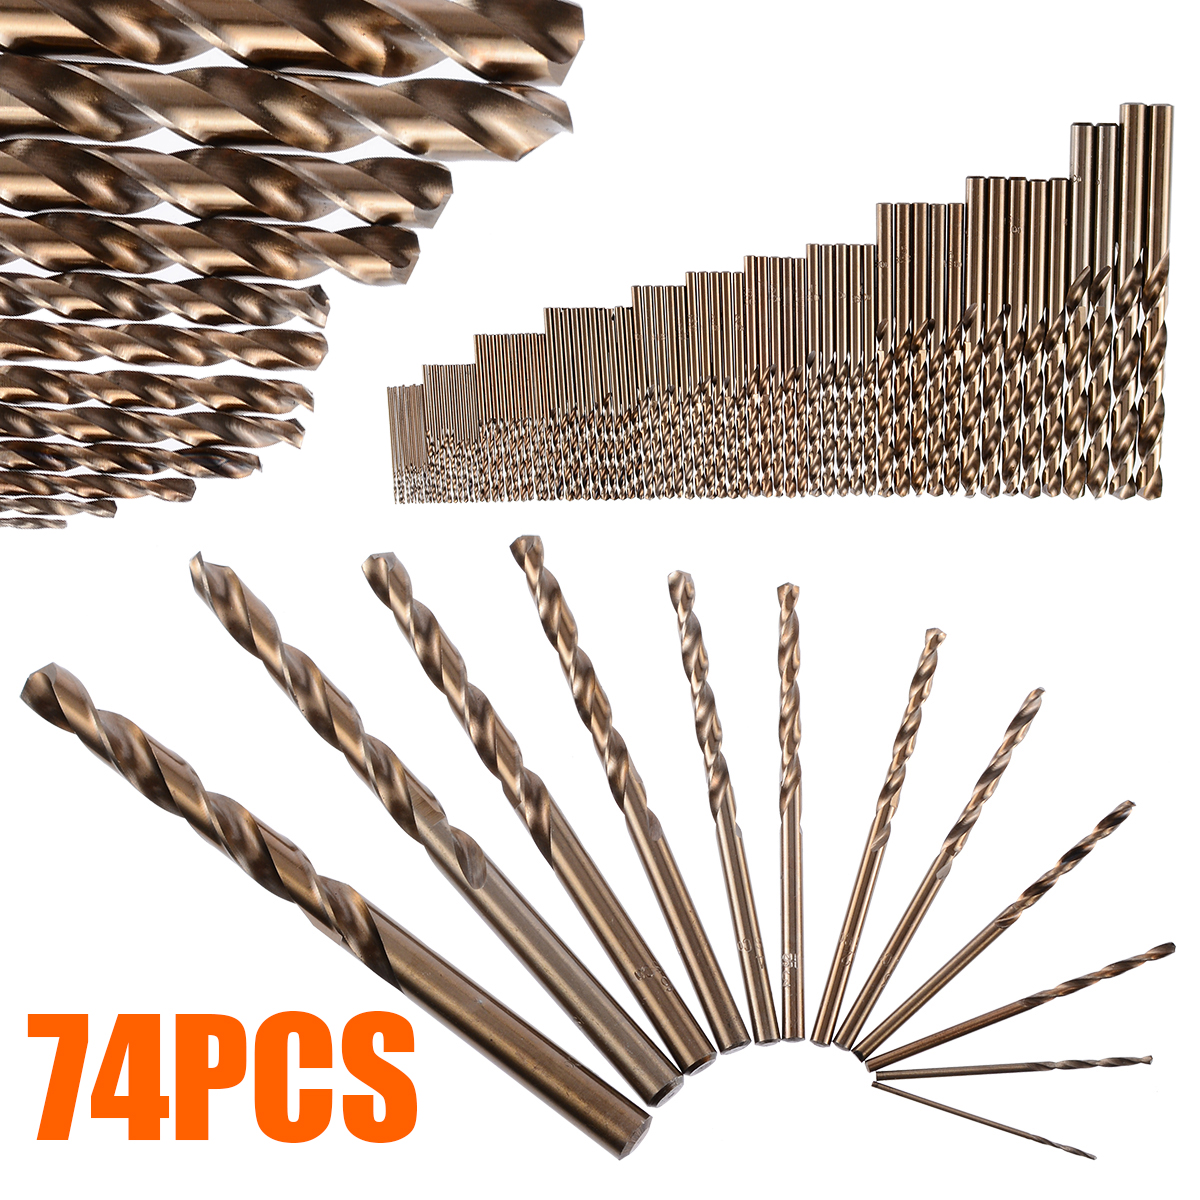 74pcs/Set 1-8mm HSS Twist Drill Bits Cobalt Drill Bit Whole Ground Metal Reamer High Strength Drilling Tool for Steel Iron74pcs/Set 1-8mm HSS Twist Drill Bits Cobalt Drill Bit Whole Ground Metal Reamer High Strength Drilling Tool for Steel Iron